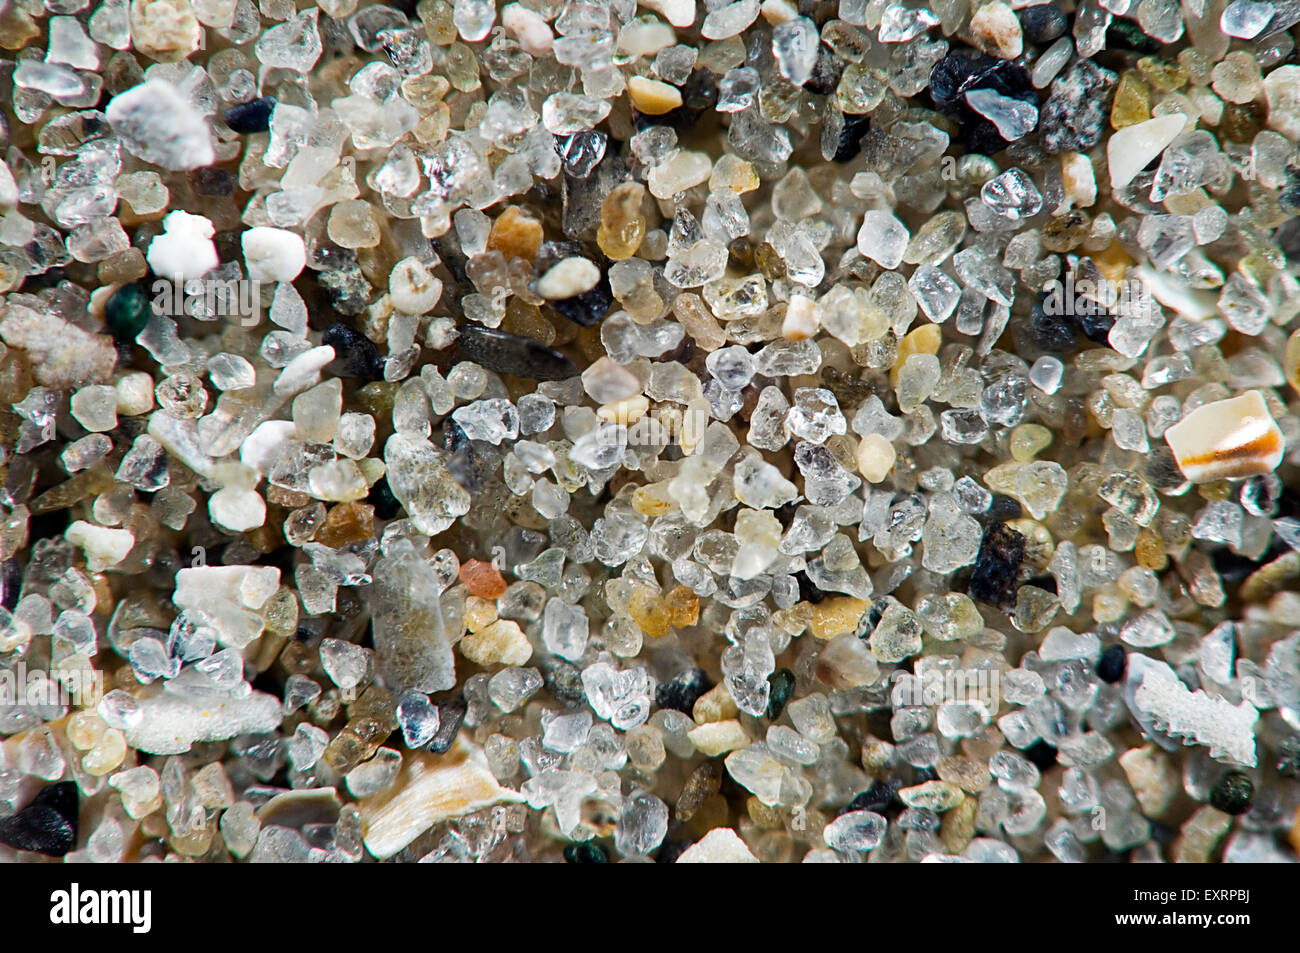 Close Up Of Sea Sand Grains Containing Shell Fragments